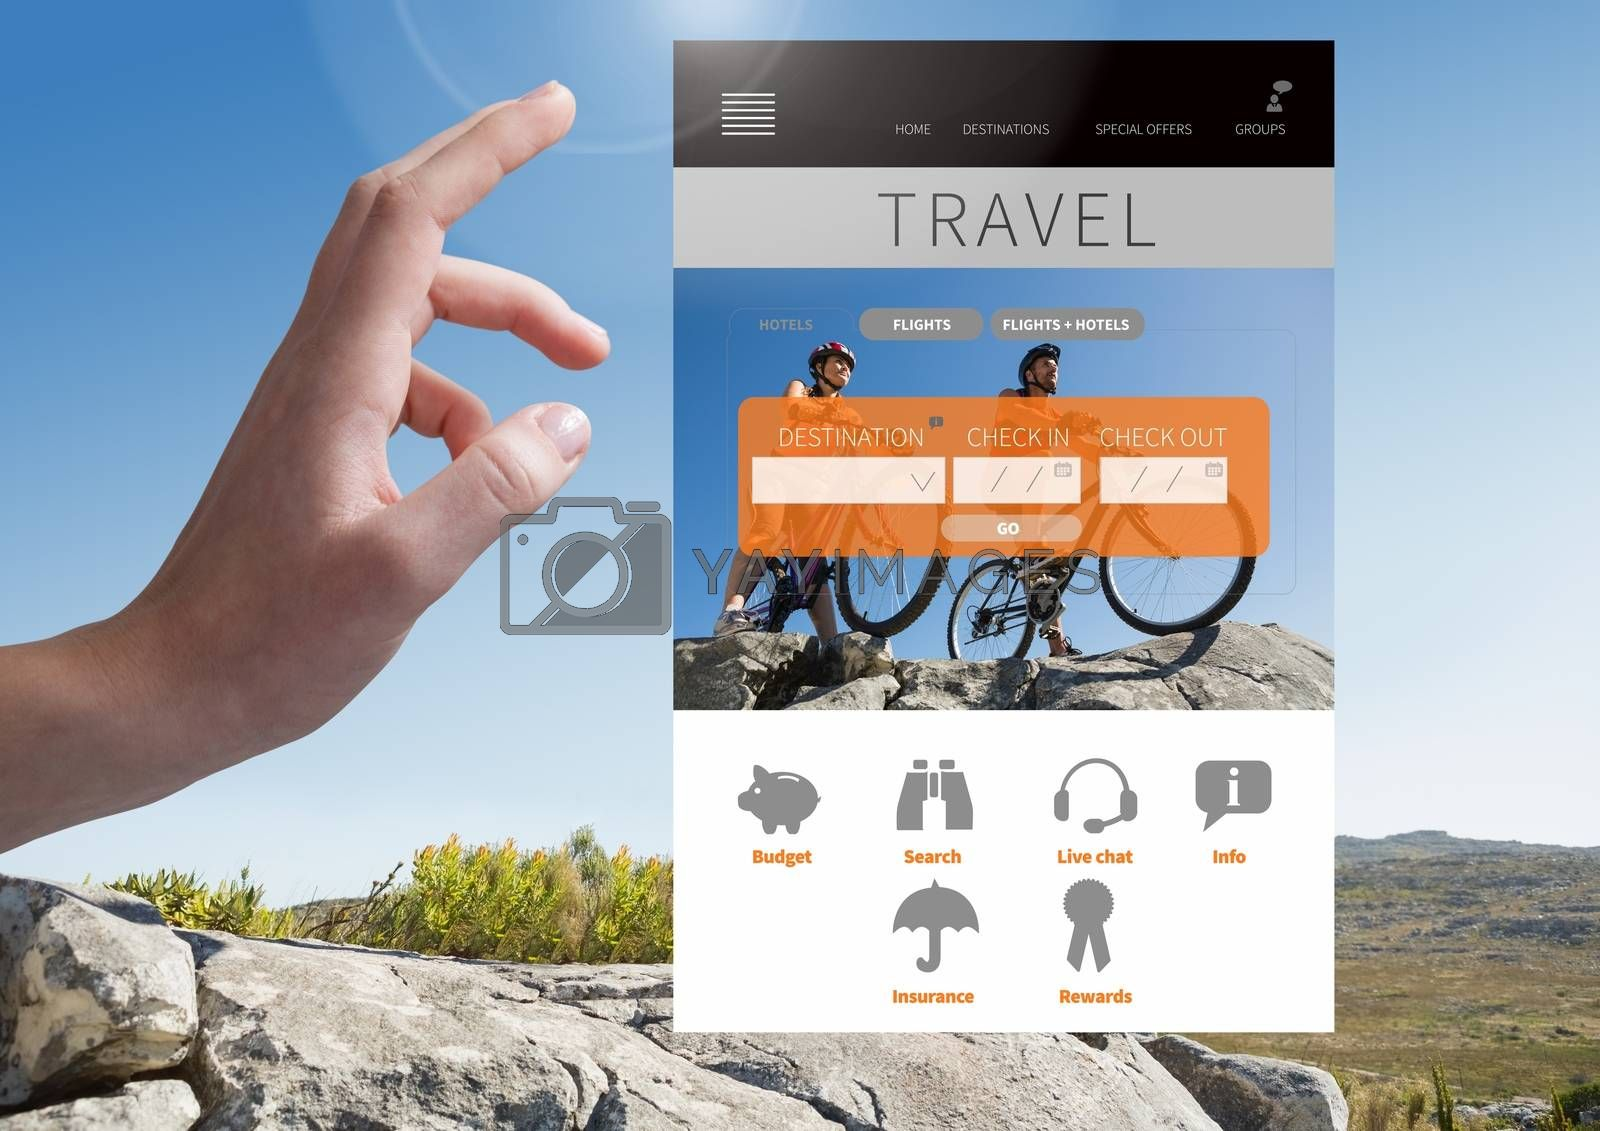 Digital composite of Hand Touching Travel App Interface